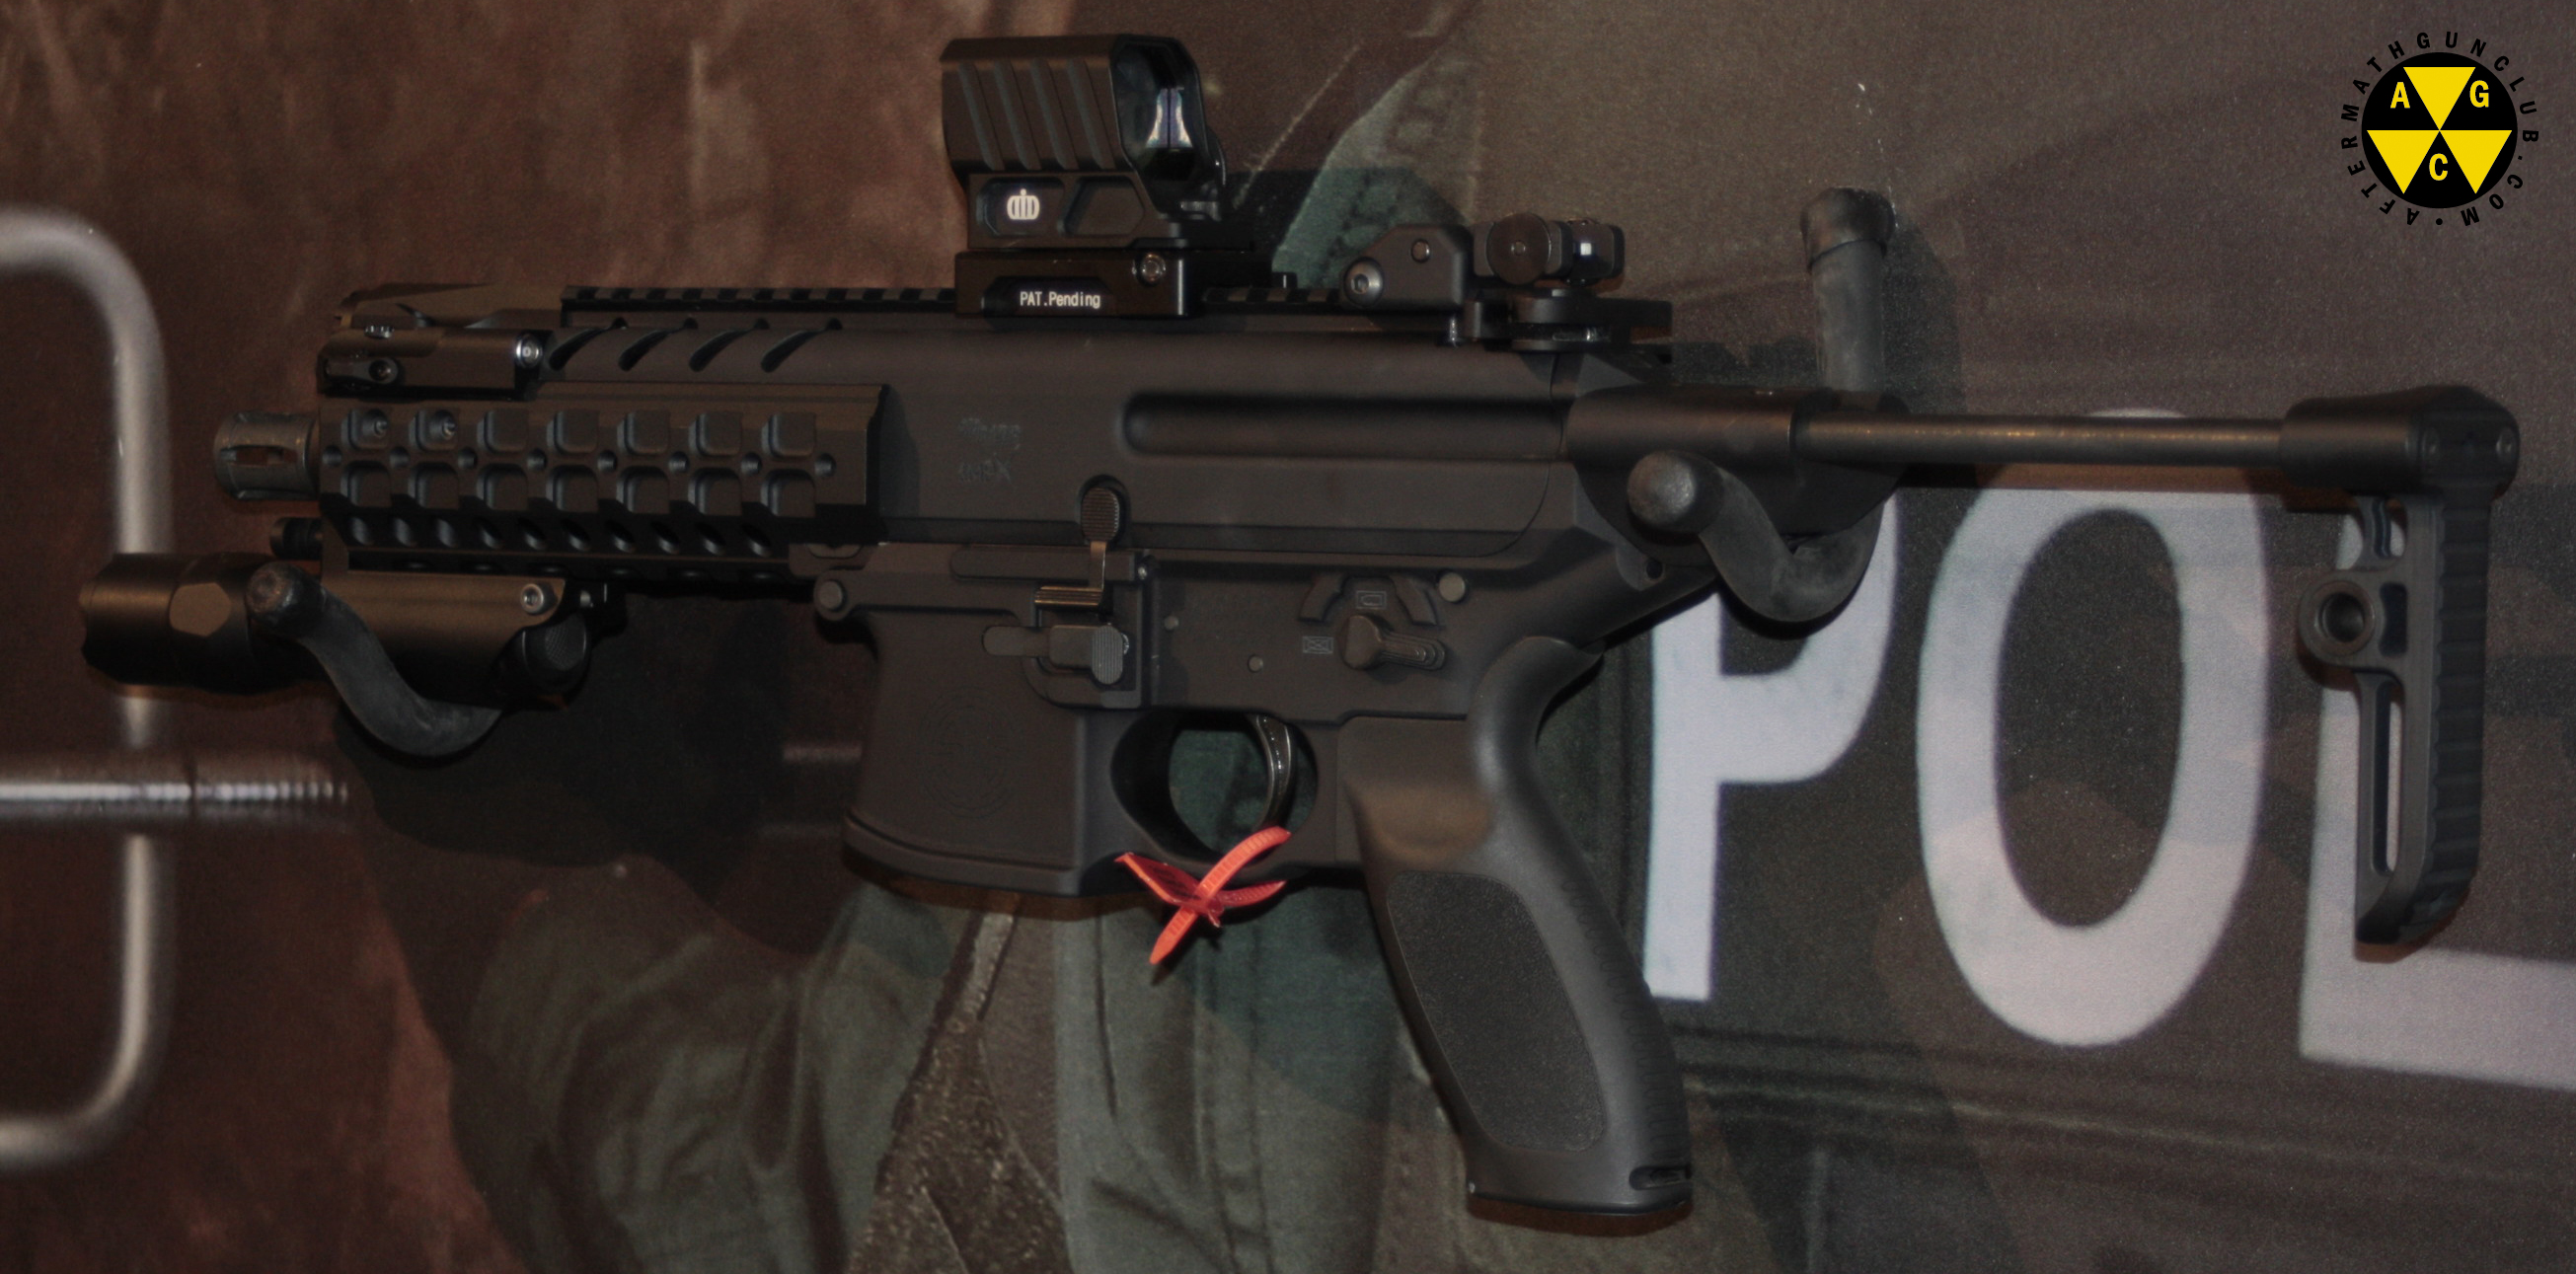 Photos of the SigSauer MPX